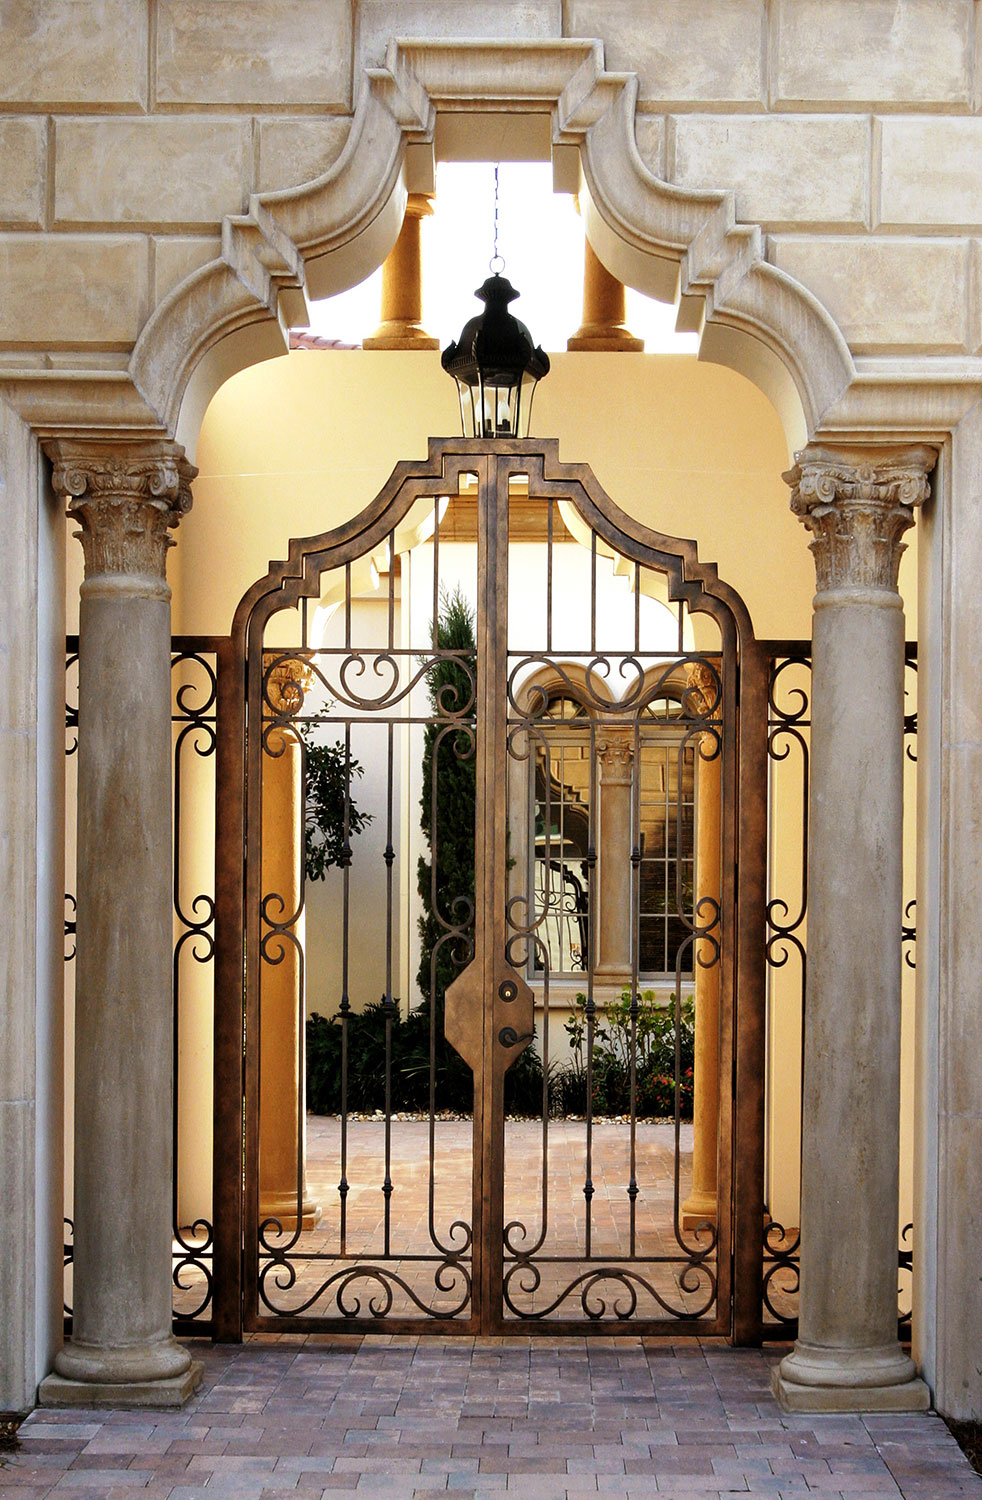 Handmade Top Villa Wrought Iron Gate One Stop Shipping To USA Hench-lg24